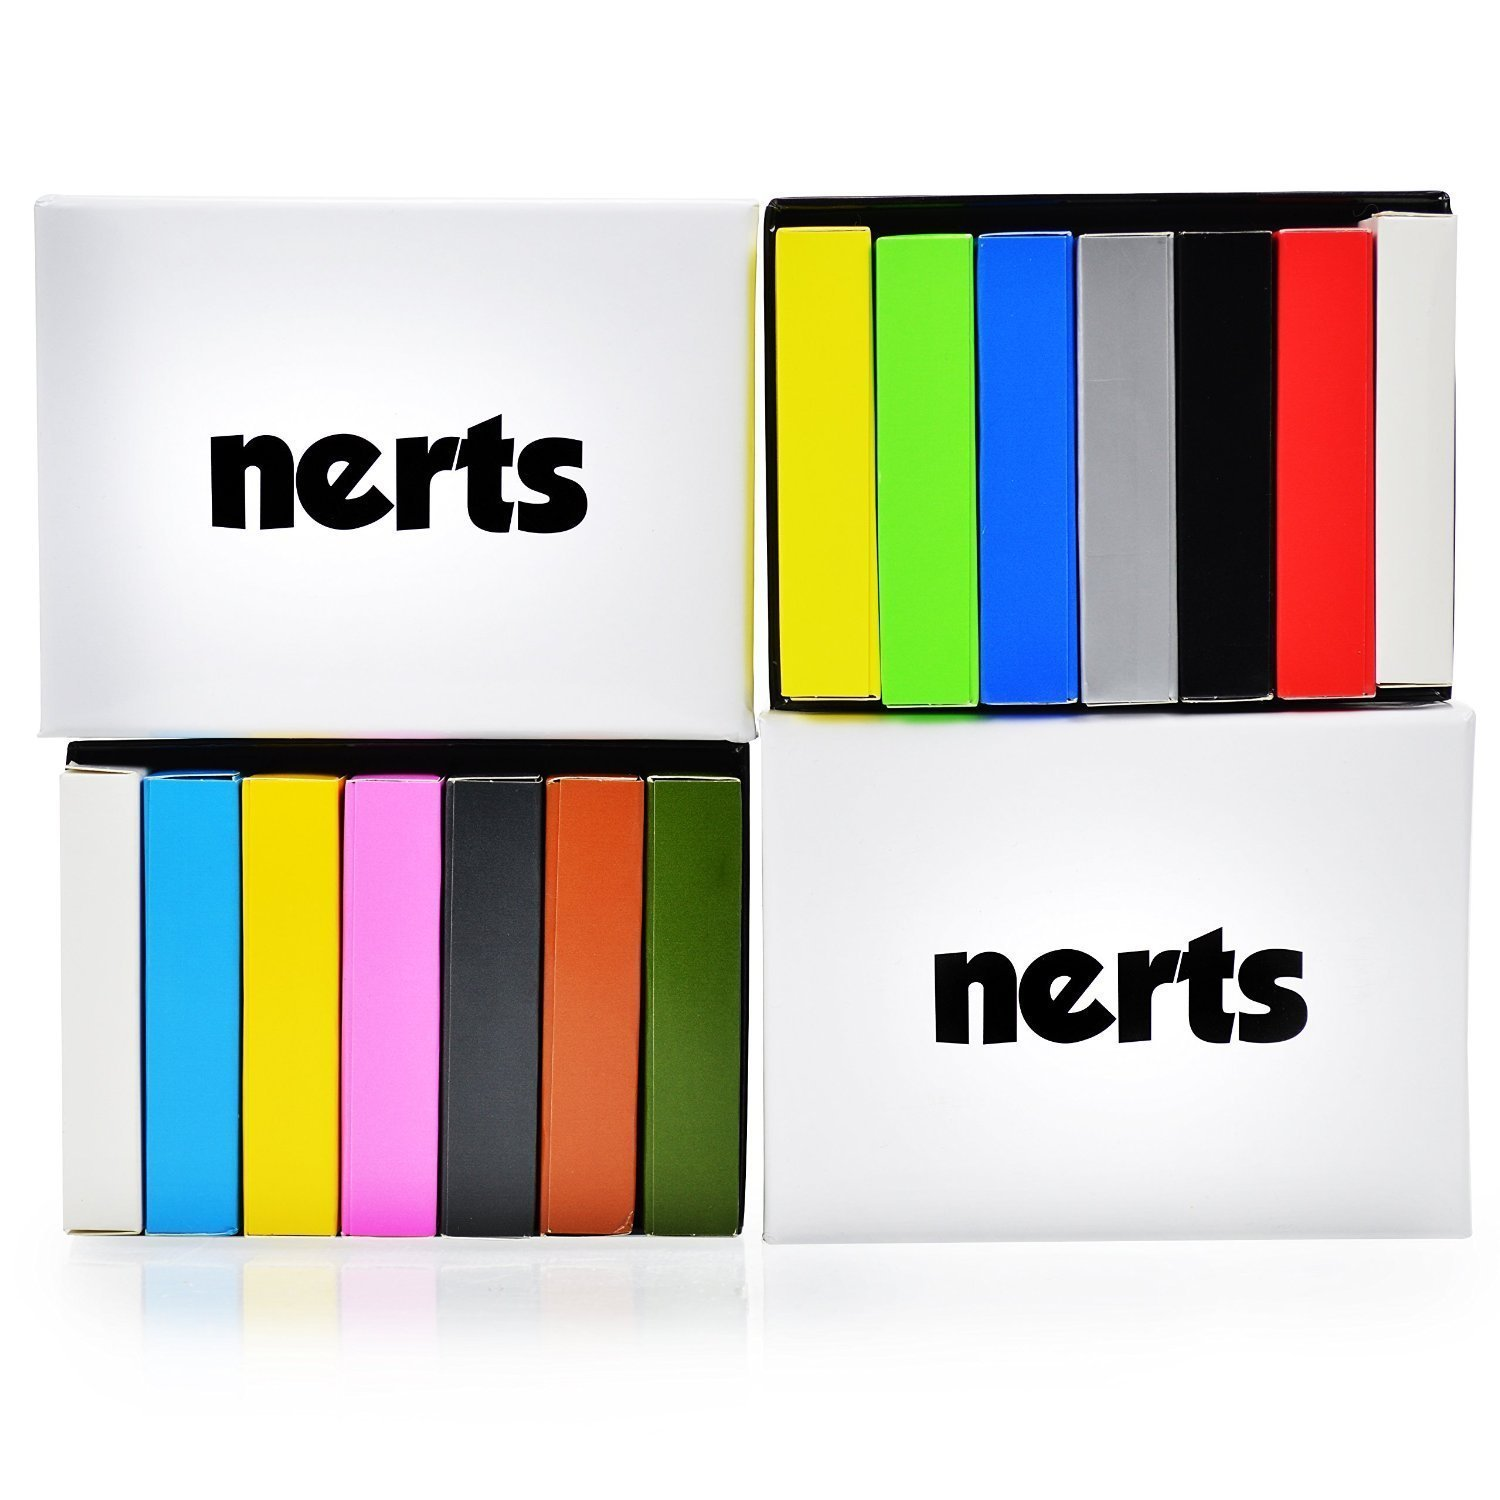 DYNASTY TOYS NERTS 12 Decks of Playing Cards Set